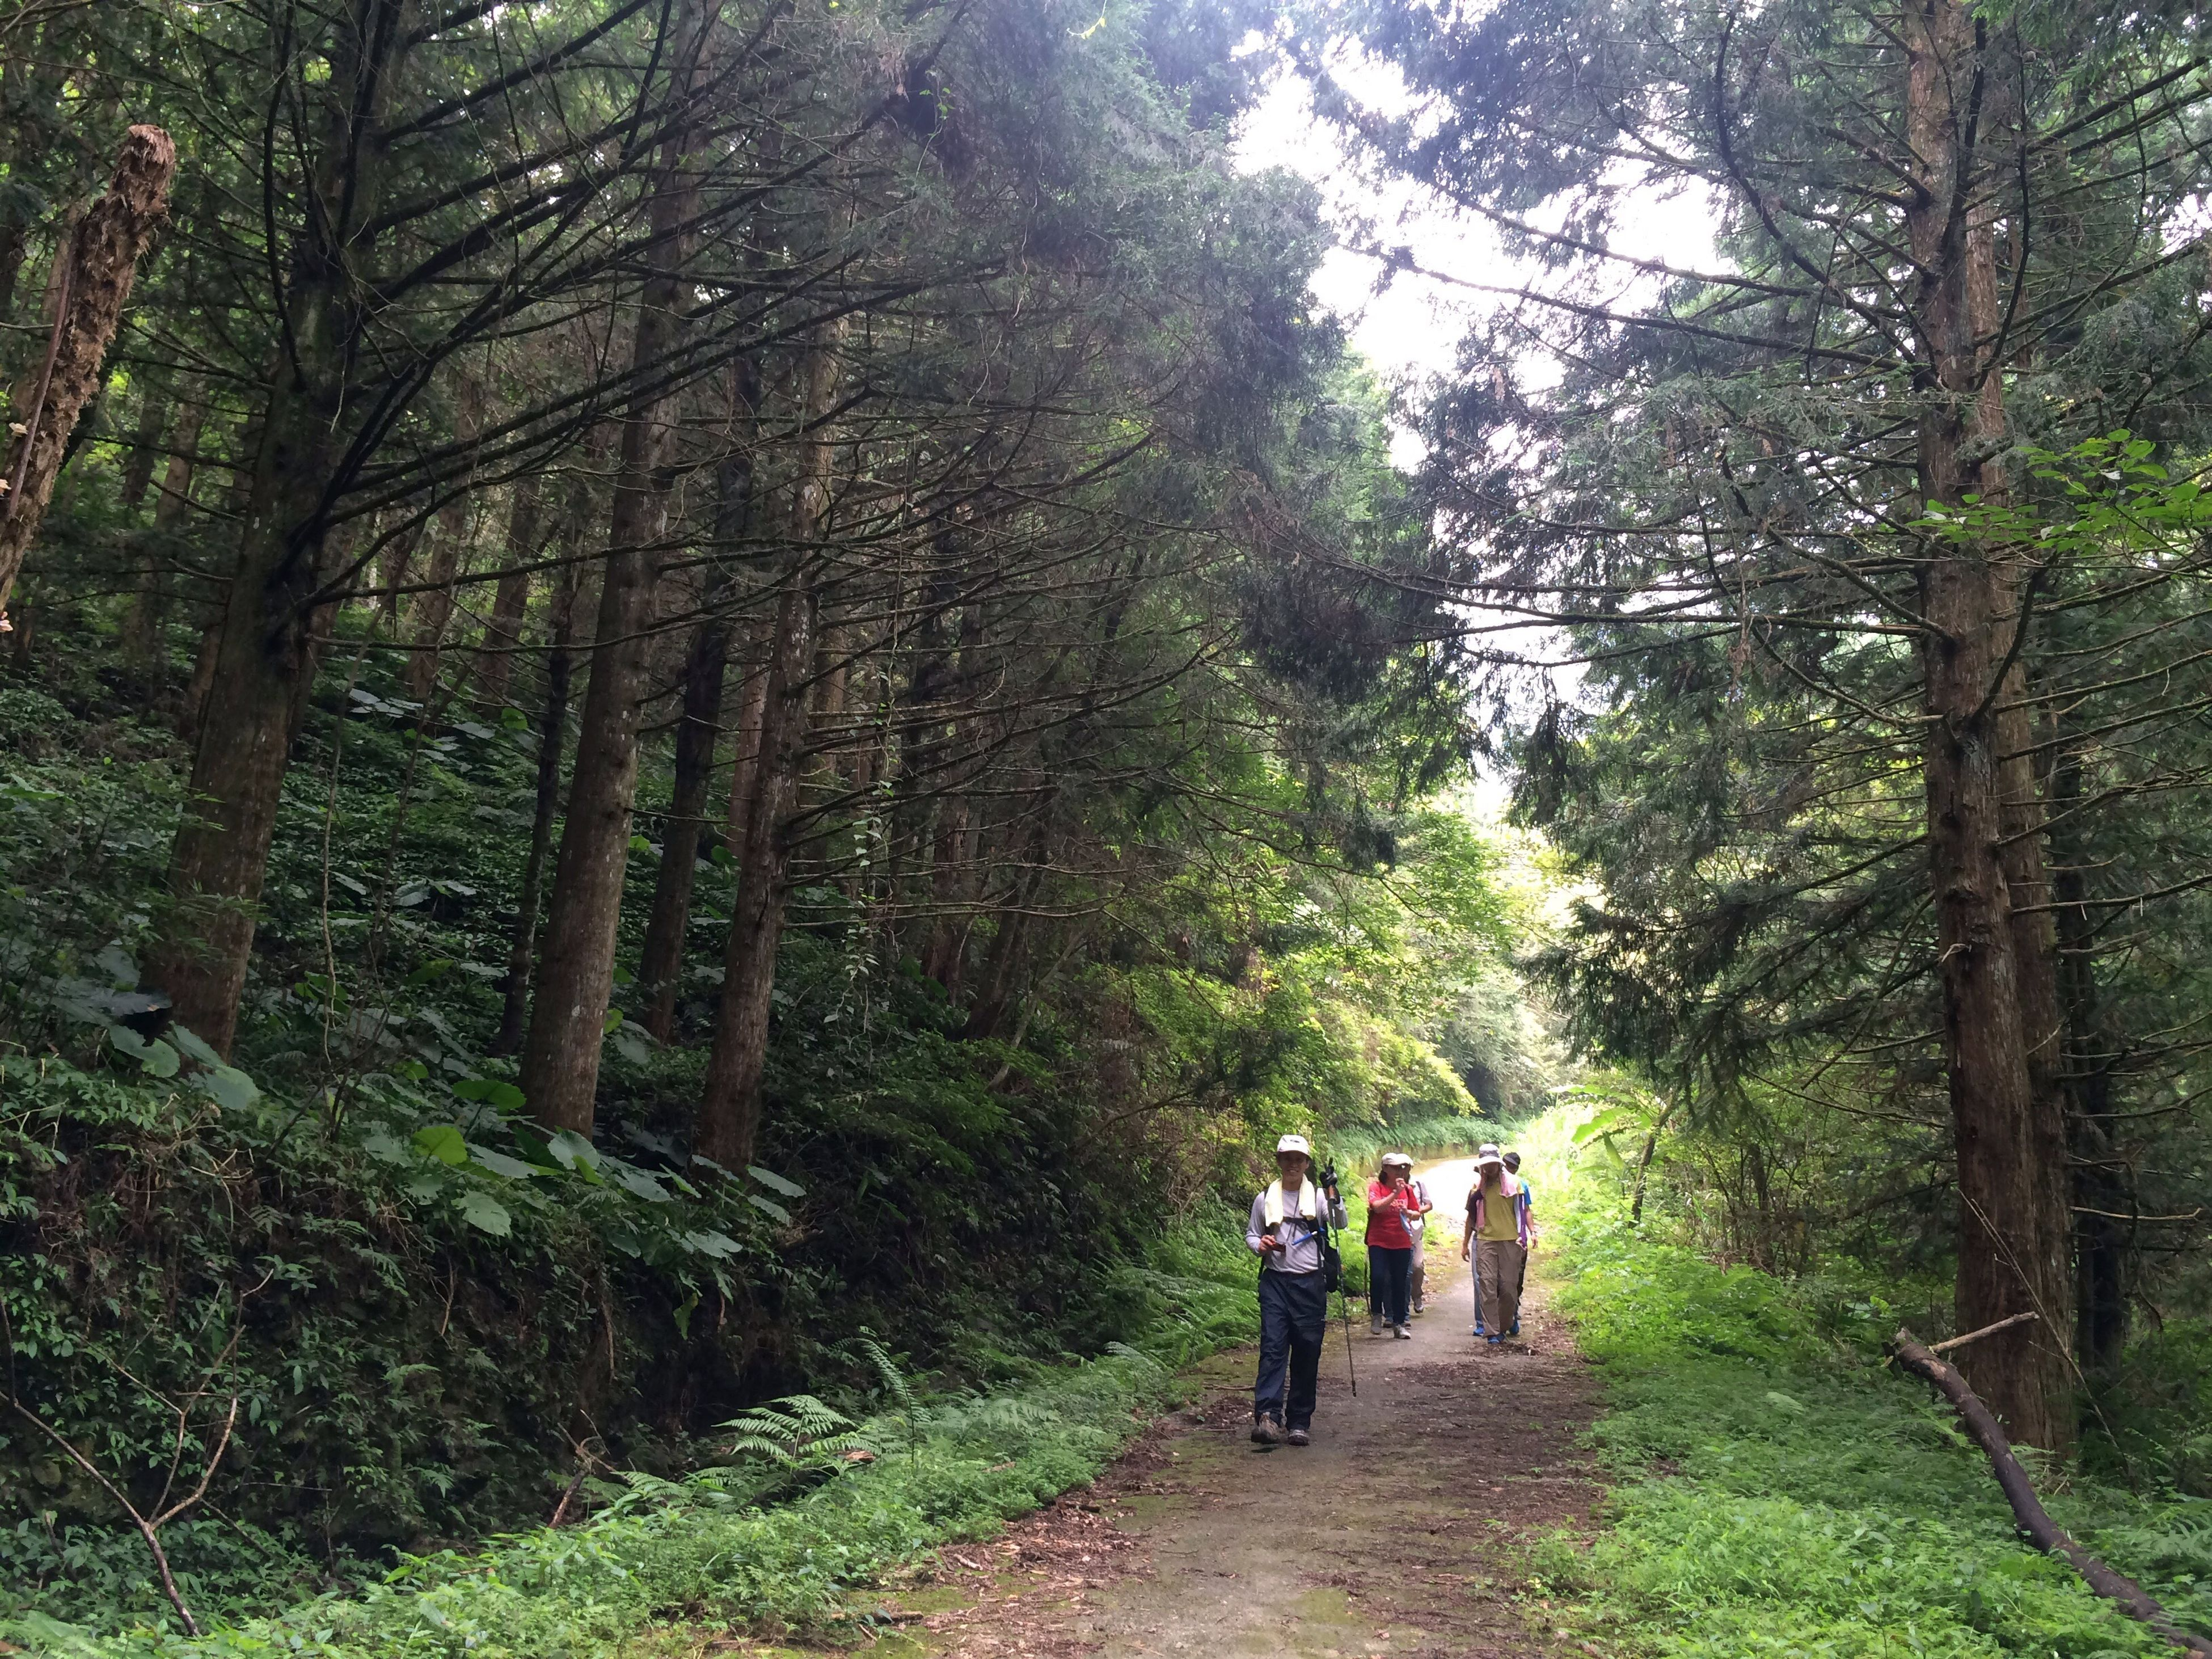 tree, forest, rear view, walking, full length, person, men, tree trunk, growth, nature, tranquil scene, non-urban scene, togetherness, tranquility, beauty in nature, scenics, the way forward, vacations, friendship, casual clothing, day, woodland, remote, footpath, tourism, green color, green